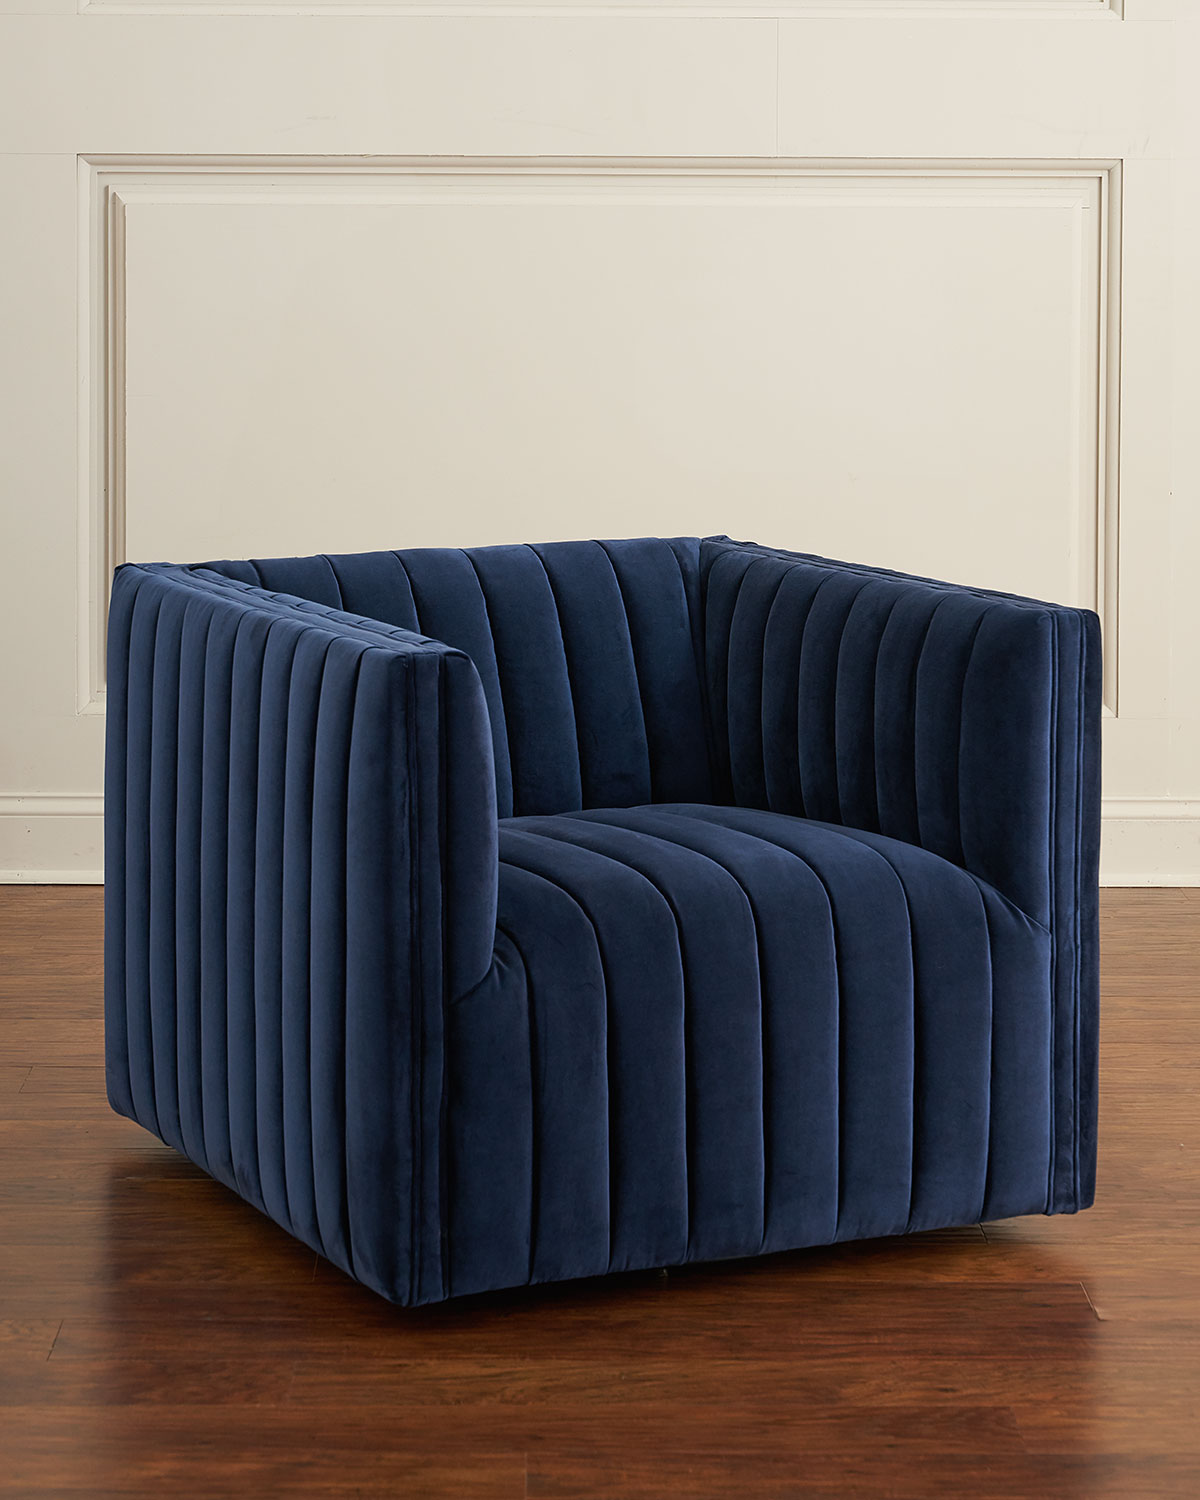 swivel cuddle chair york wooden chairs with arms buxton channel tufted neiman marcus